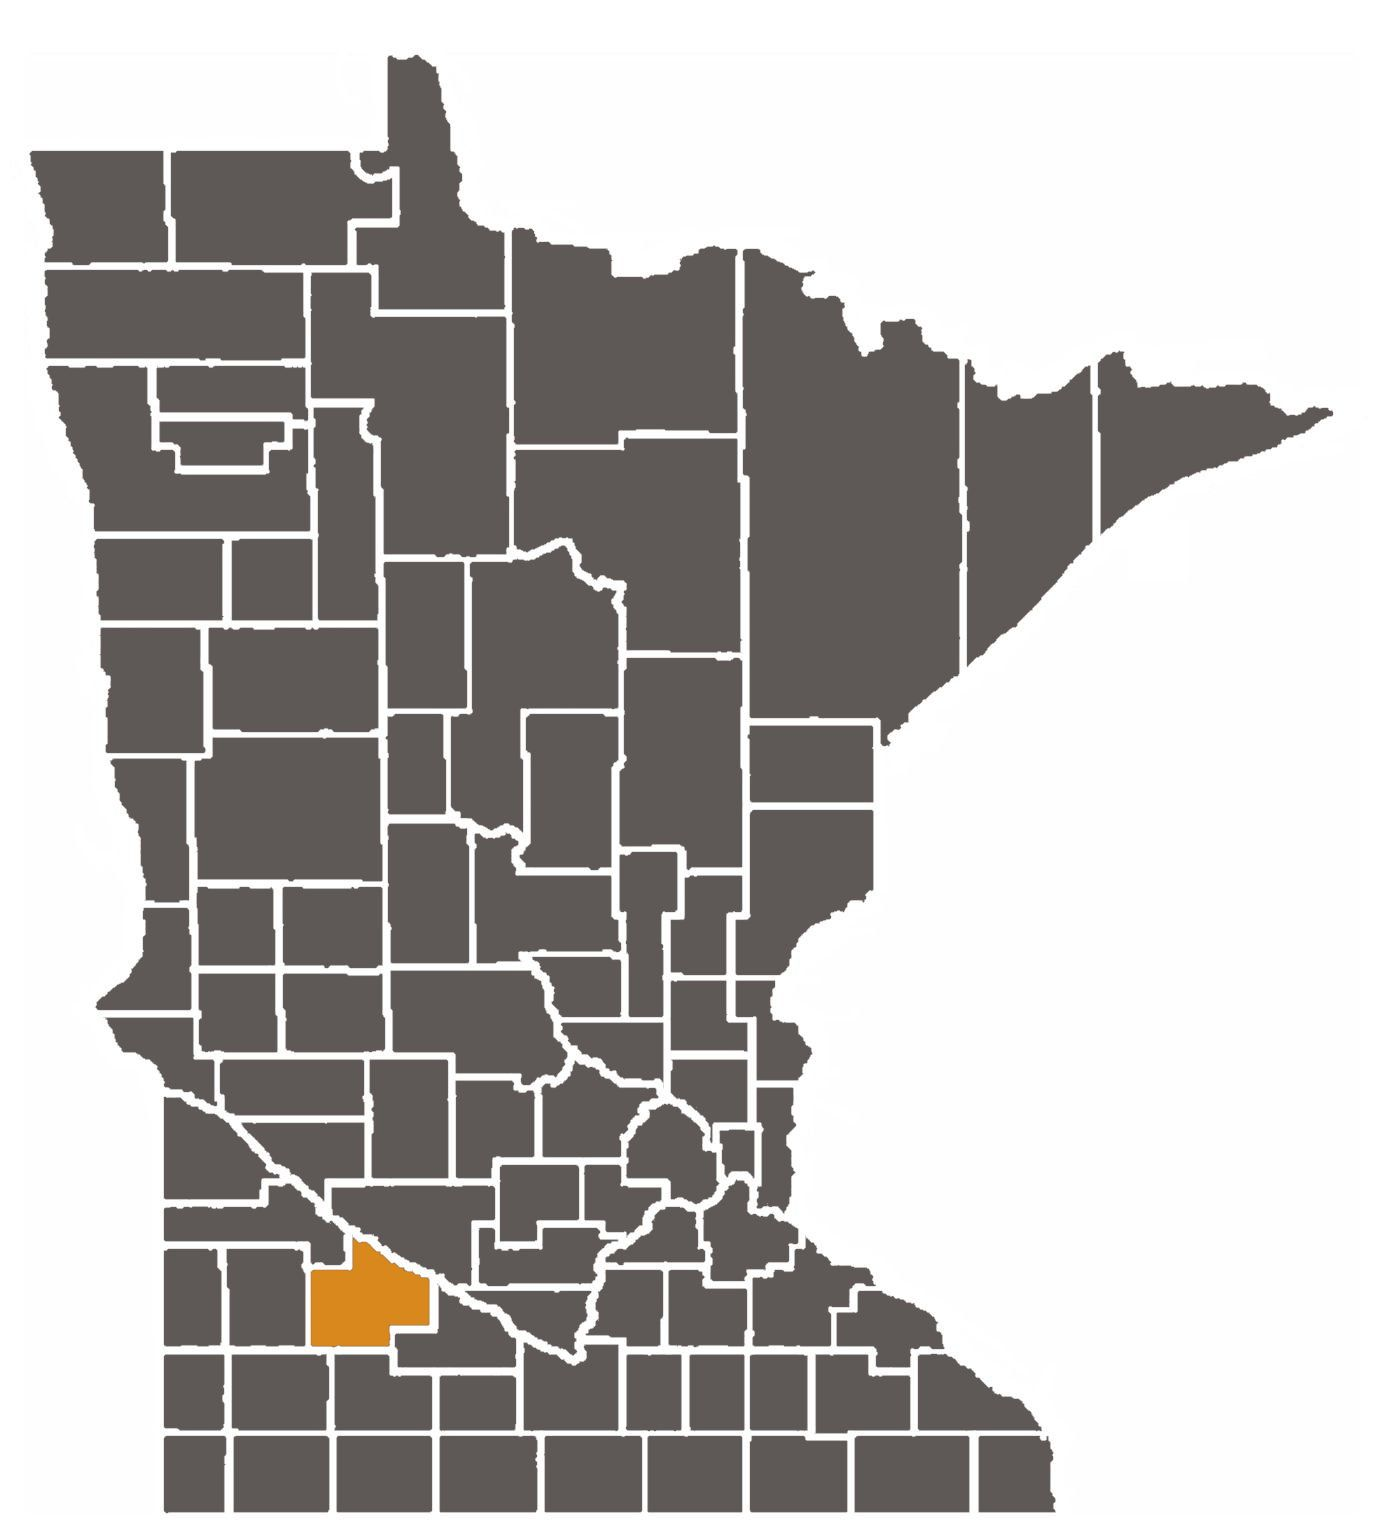 Minnesota map with Redwood County highlighted.